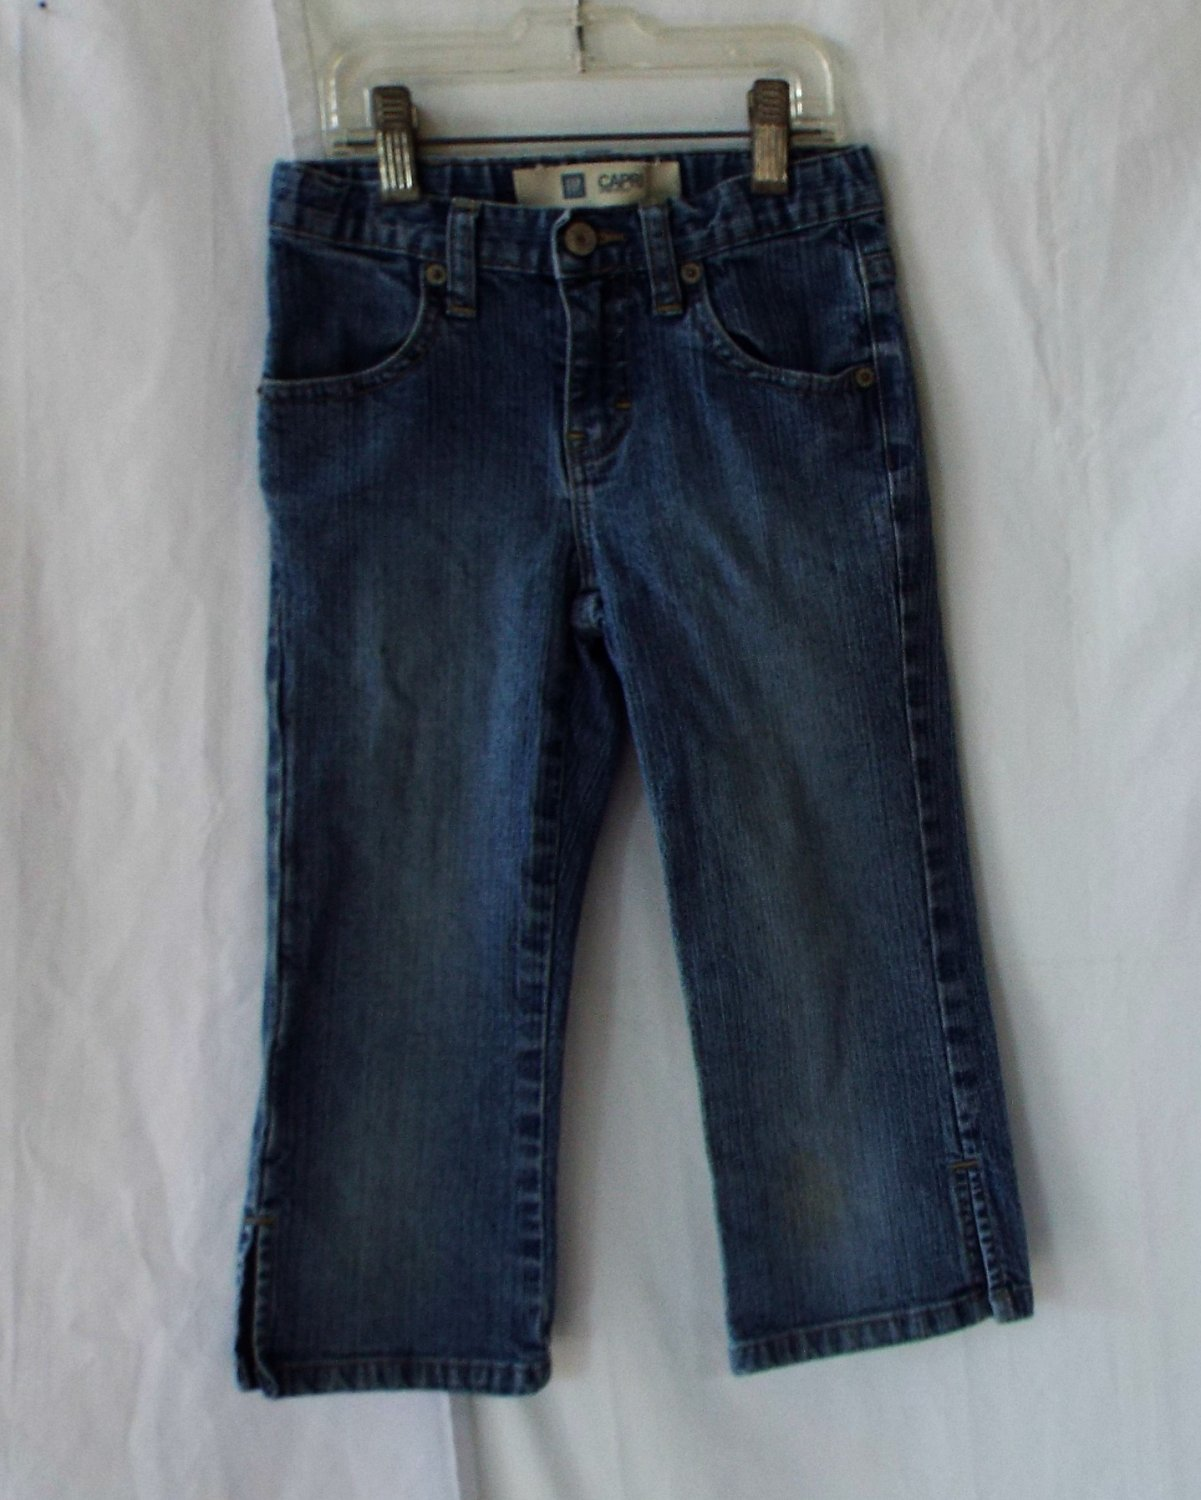 Gap Girls Size 7 Slim Jean Capri